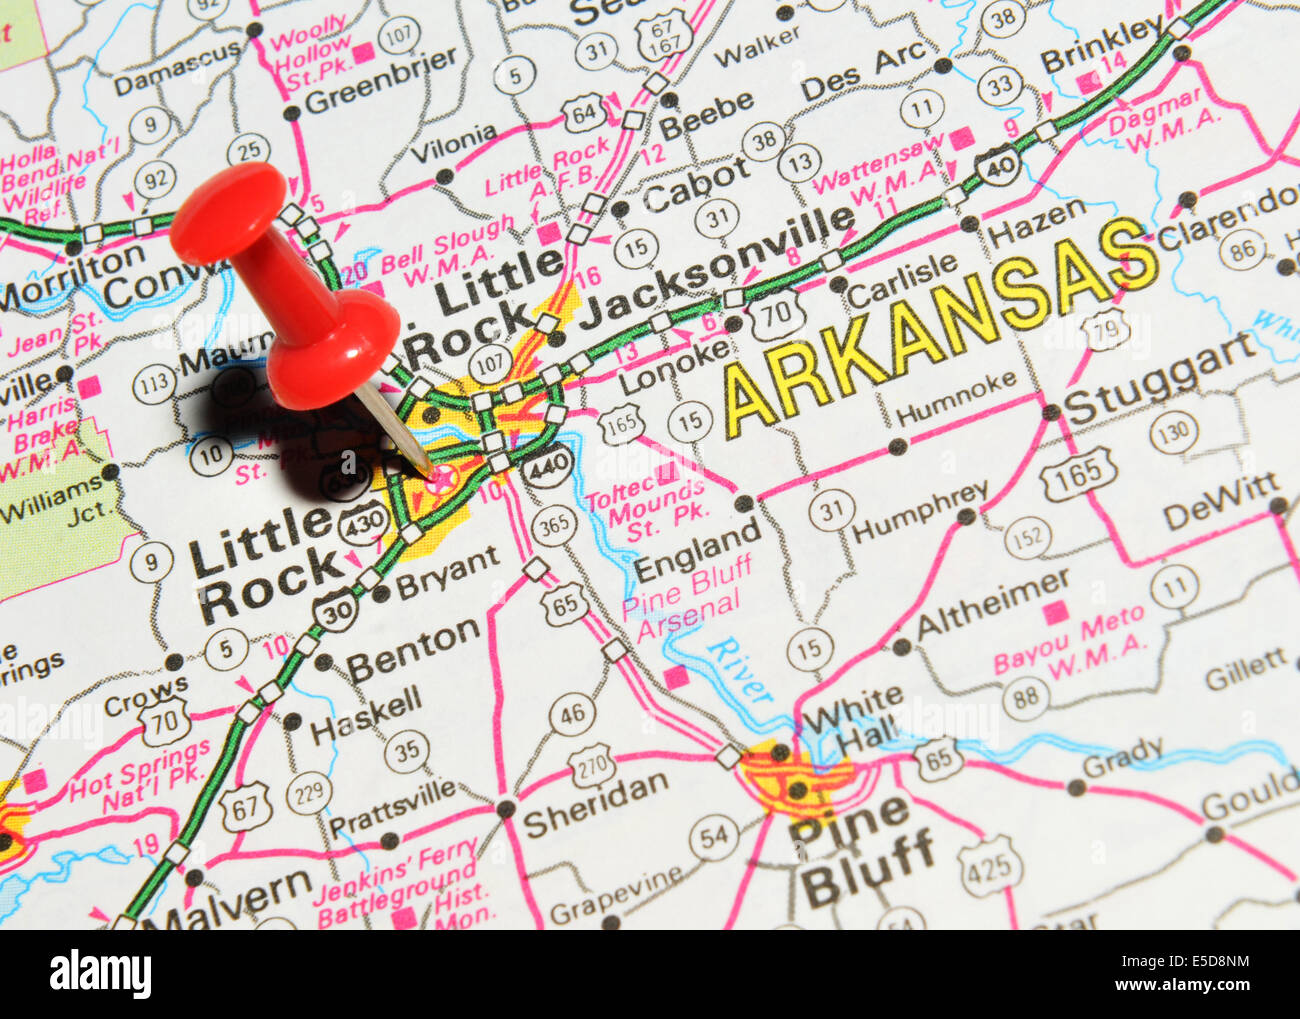 Arkansas Little Rock on US map Stock Photo: 72207008 - Alamy